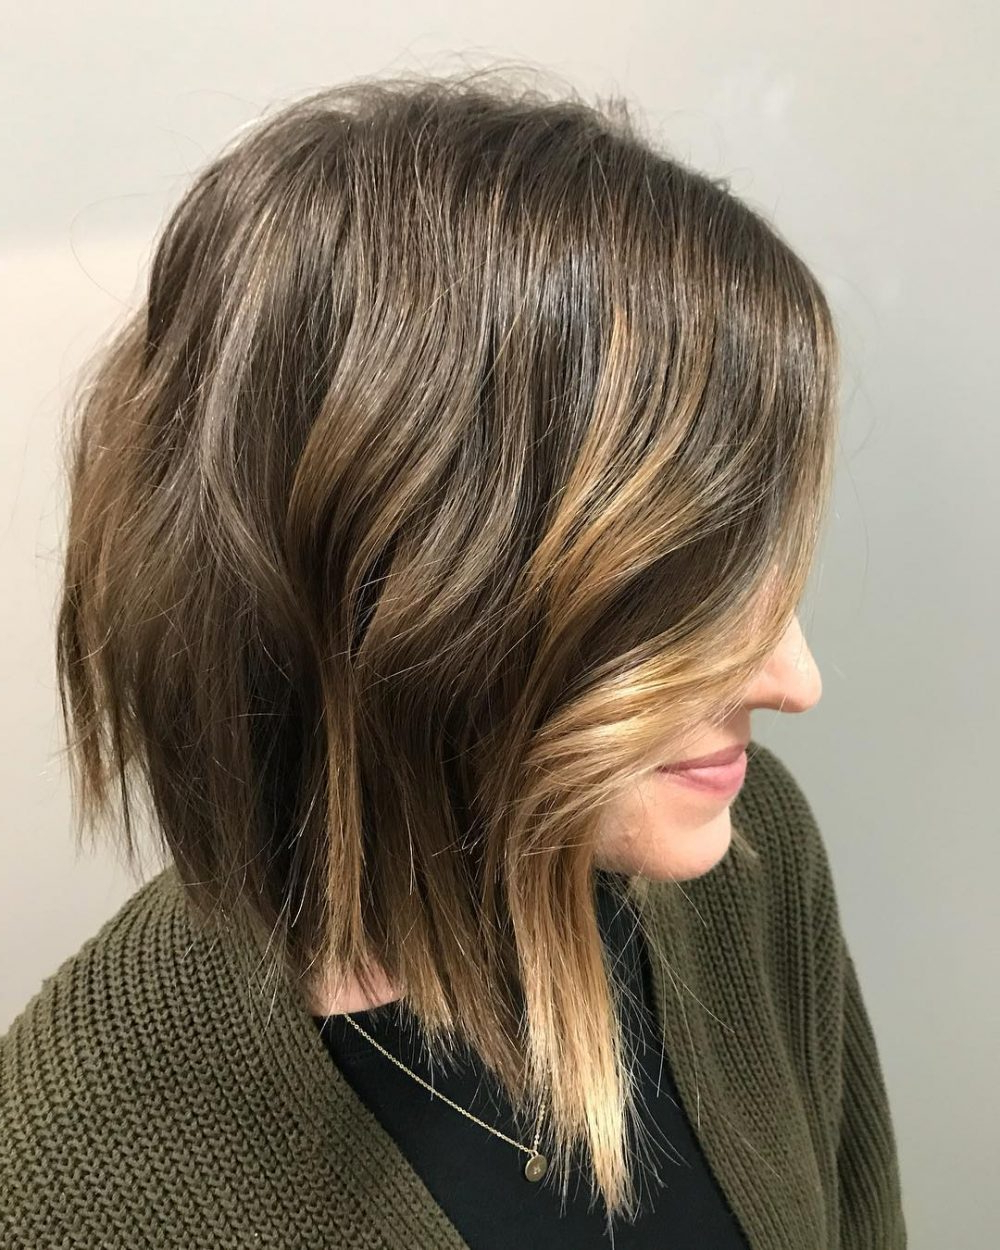 45 Chic Choppy Bob Hairstyles For 2018 Throughout Undercut Bob Hairstyles With Jagged Ends (Gallery 16 of 20)